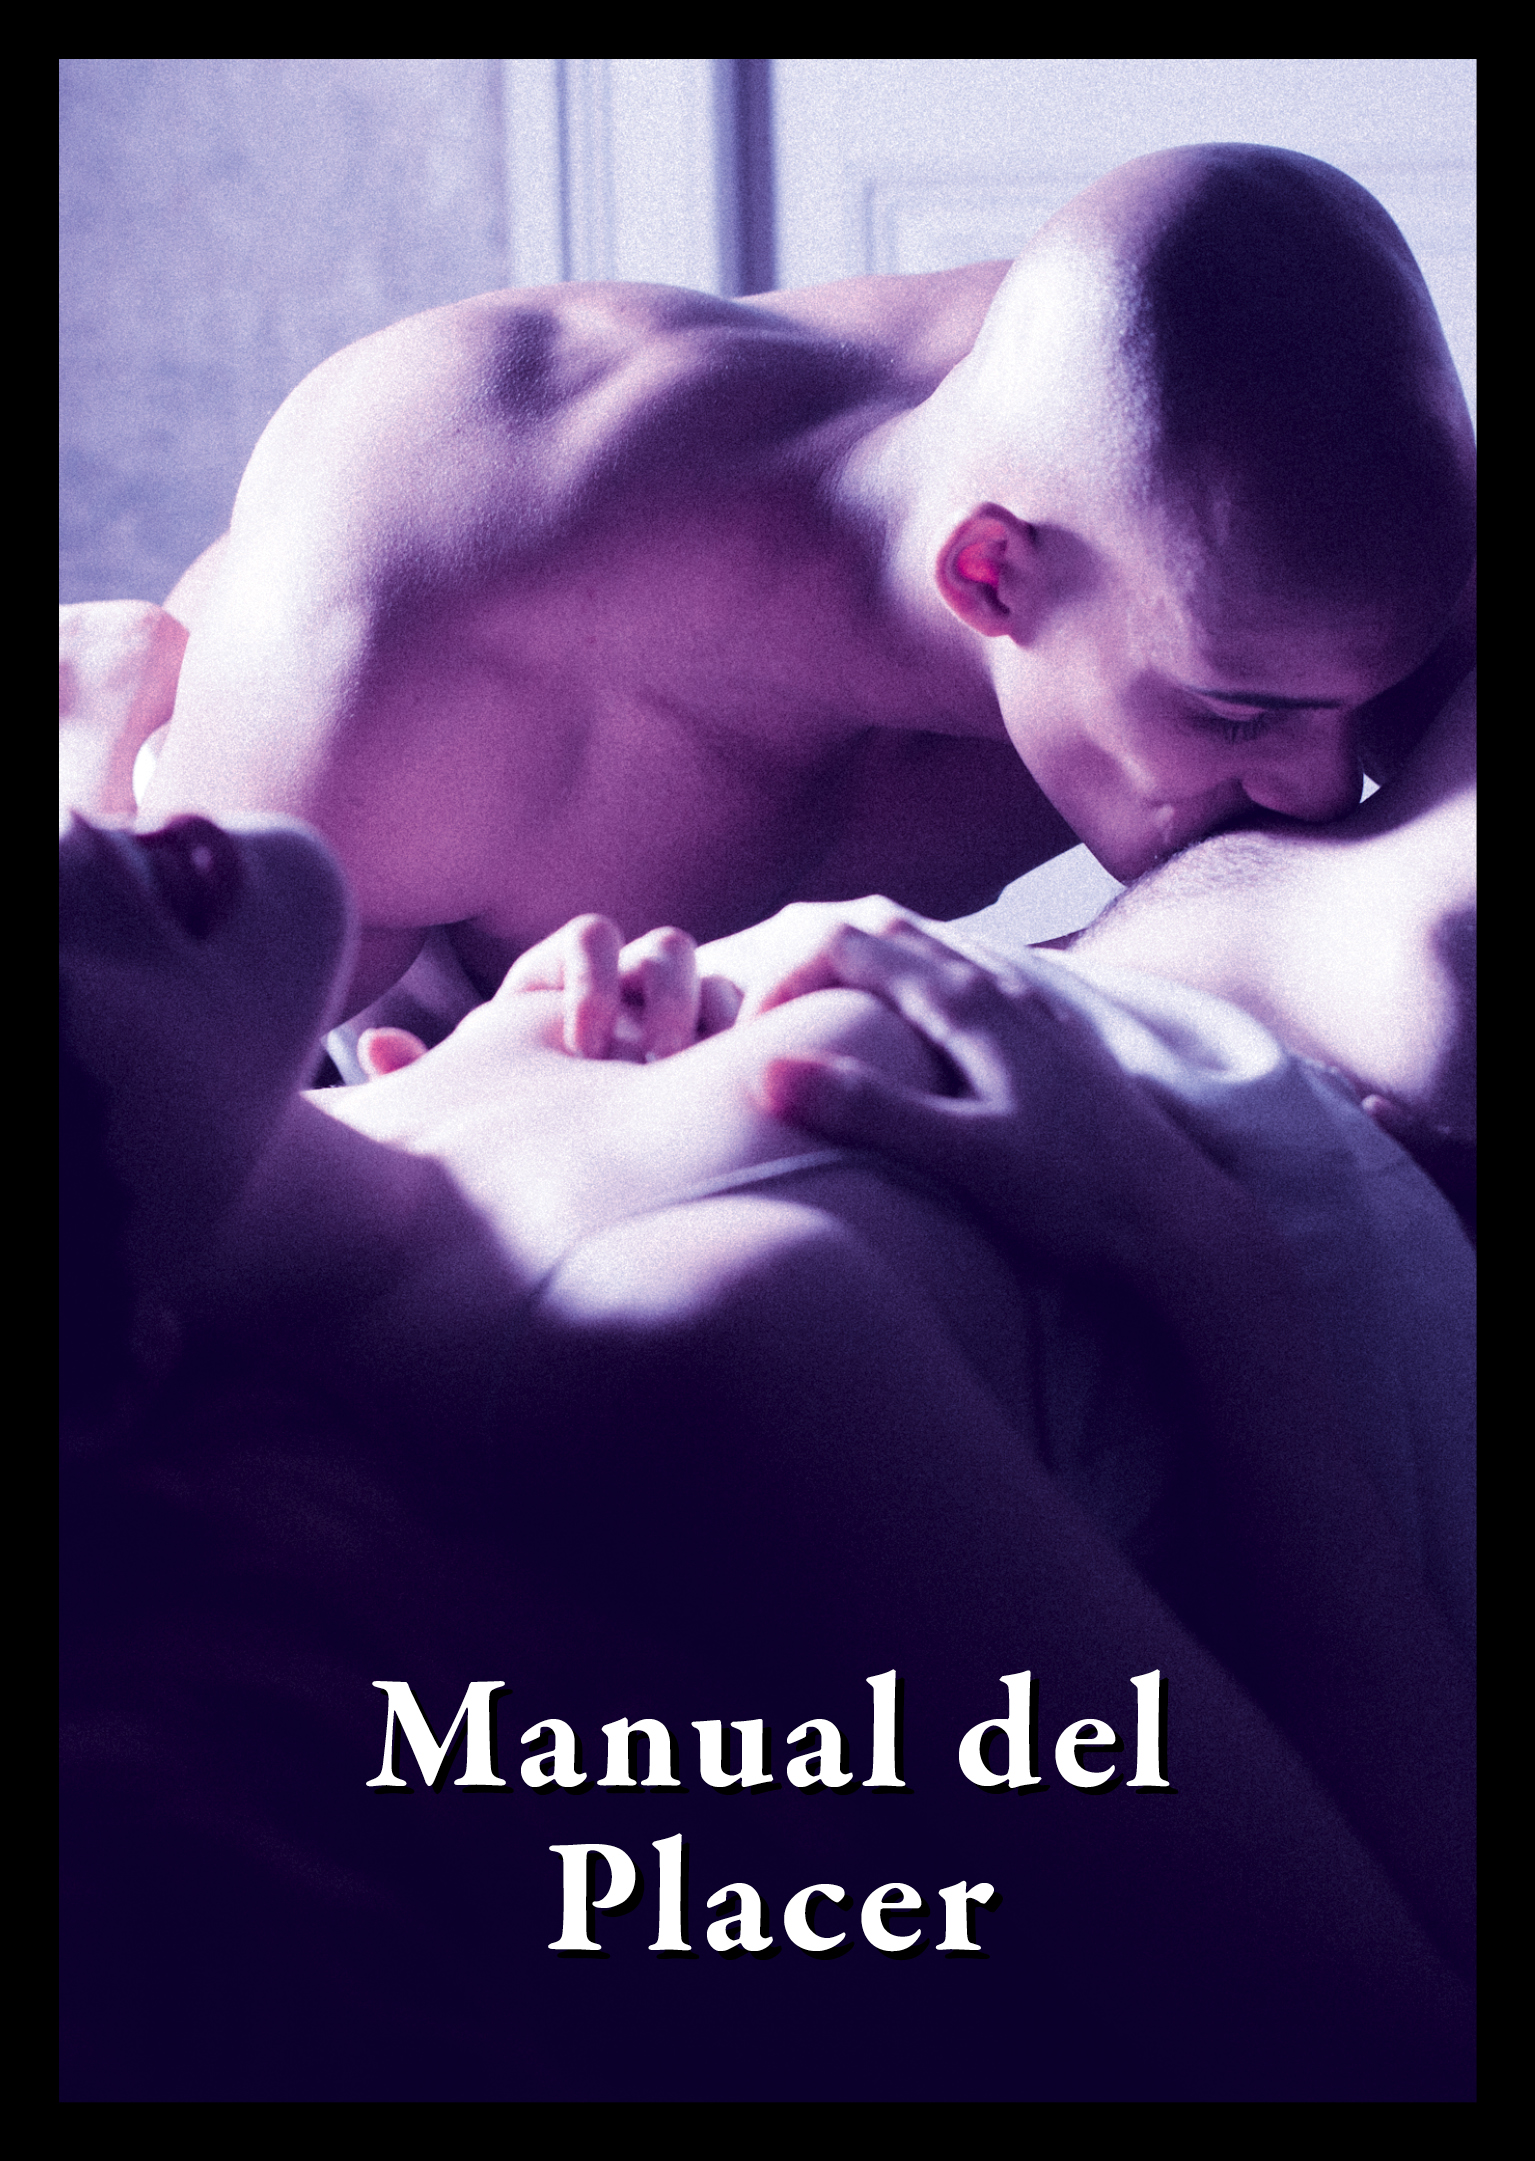 Xconfessions By Erika Lust, Manual Del Placer